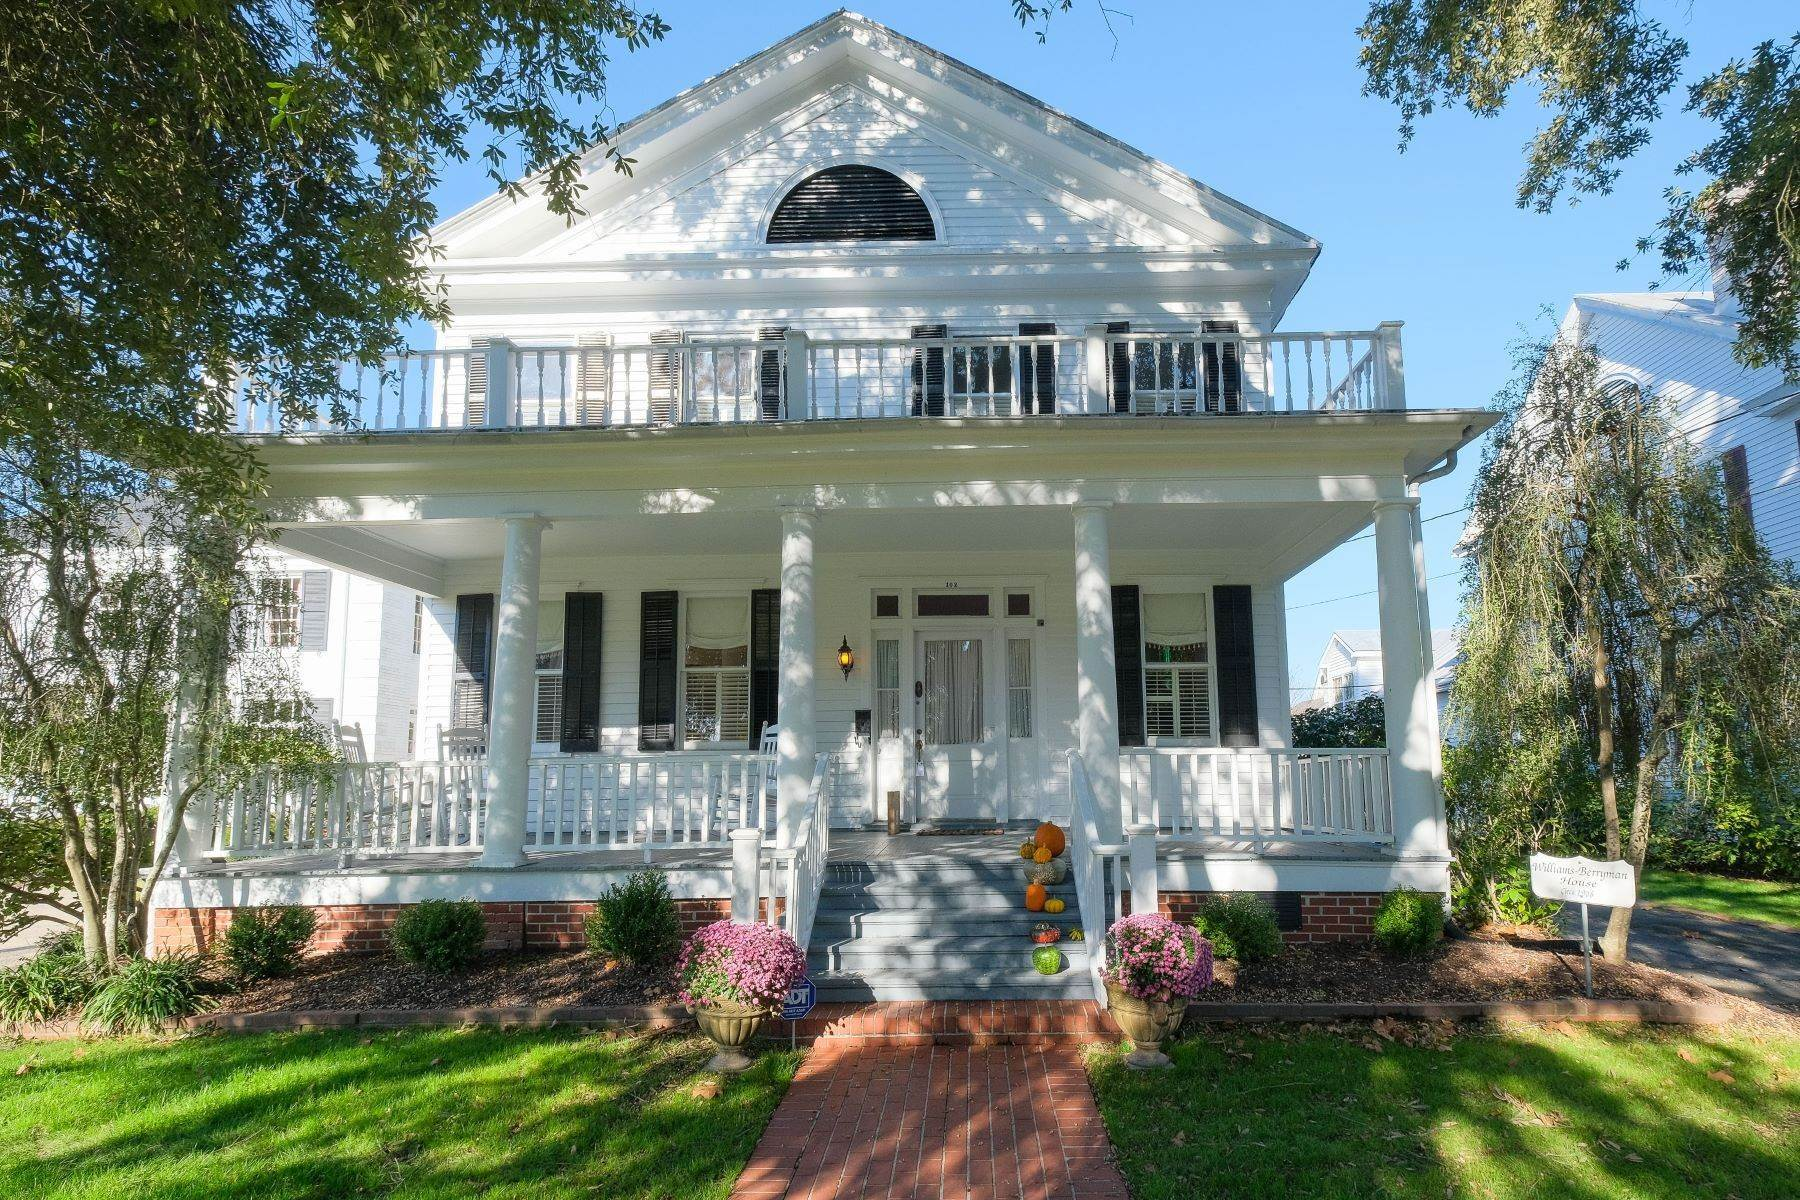 Single Family Homes for Sale at DOWNTOWN COLONIAL REVIVAL 102 W Gale St Edenton, North Carolina 27932 United States